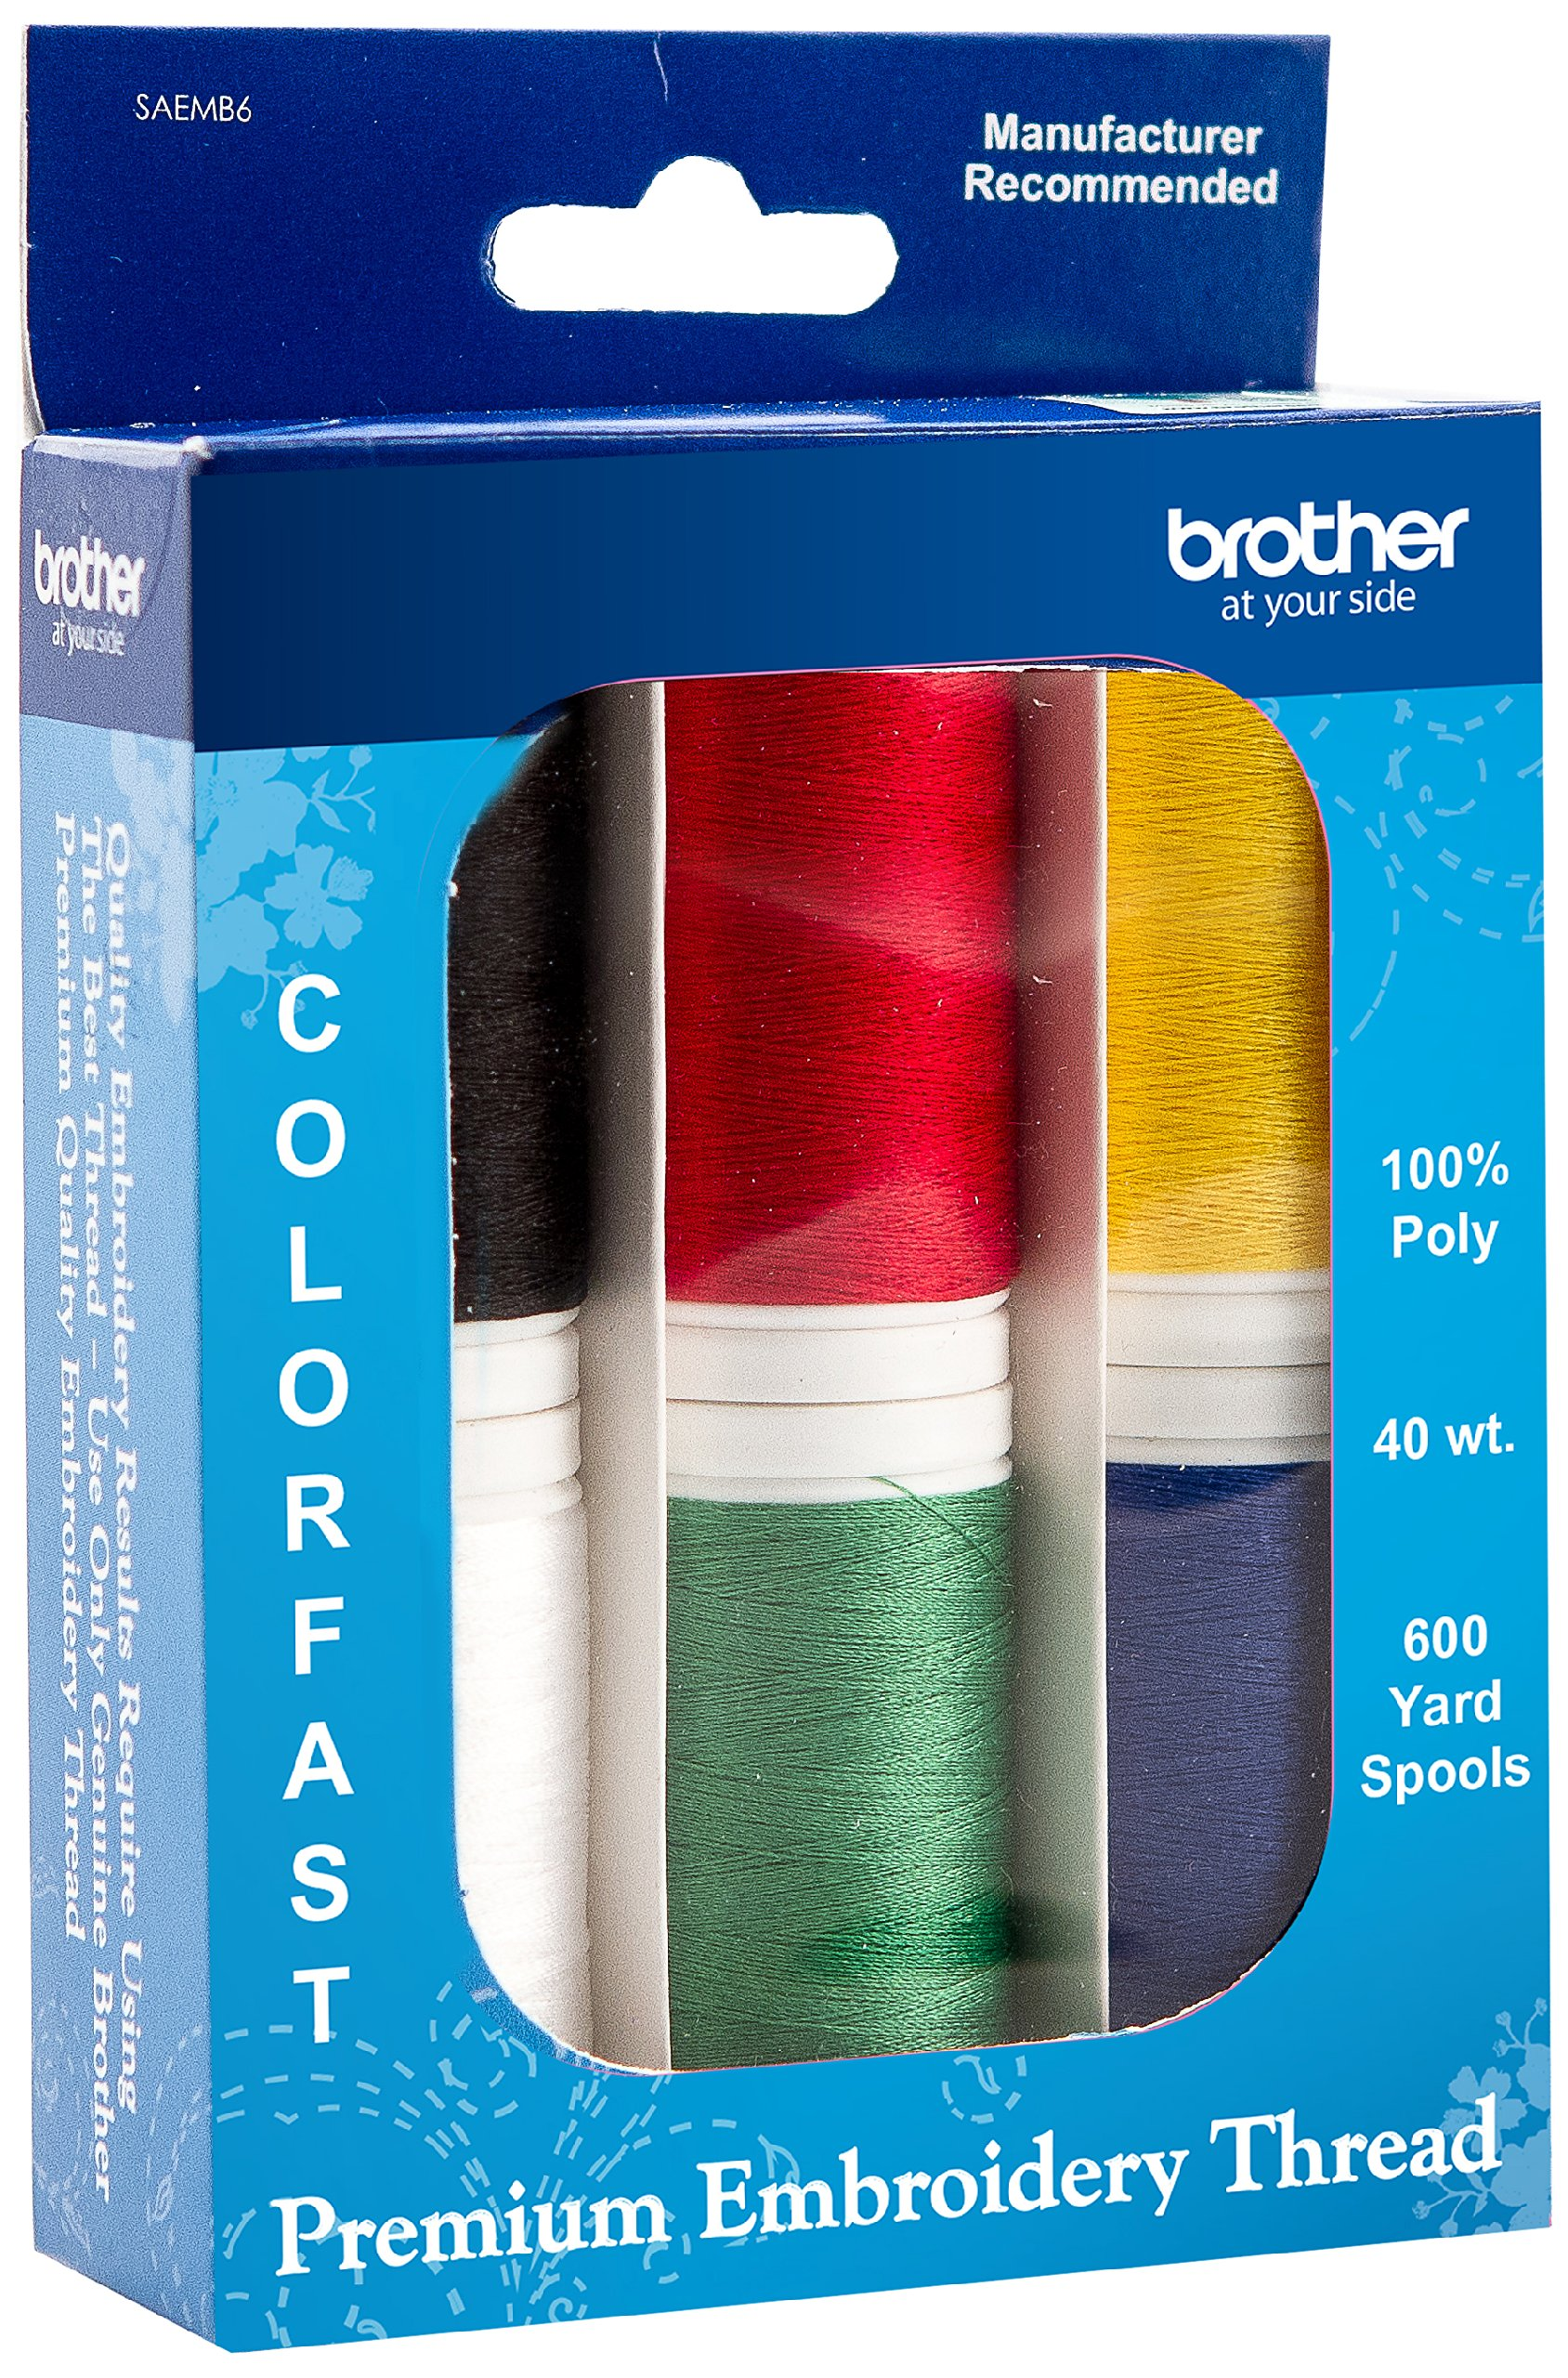 Brother SAEMB6 Premium Embroidery Thread, 6 spools, 100 Percent Polyester by Brother